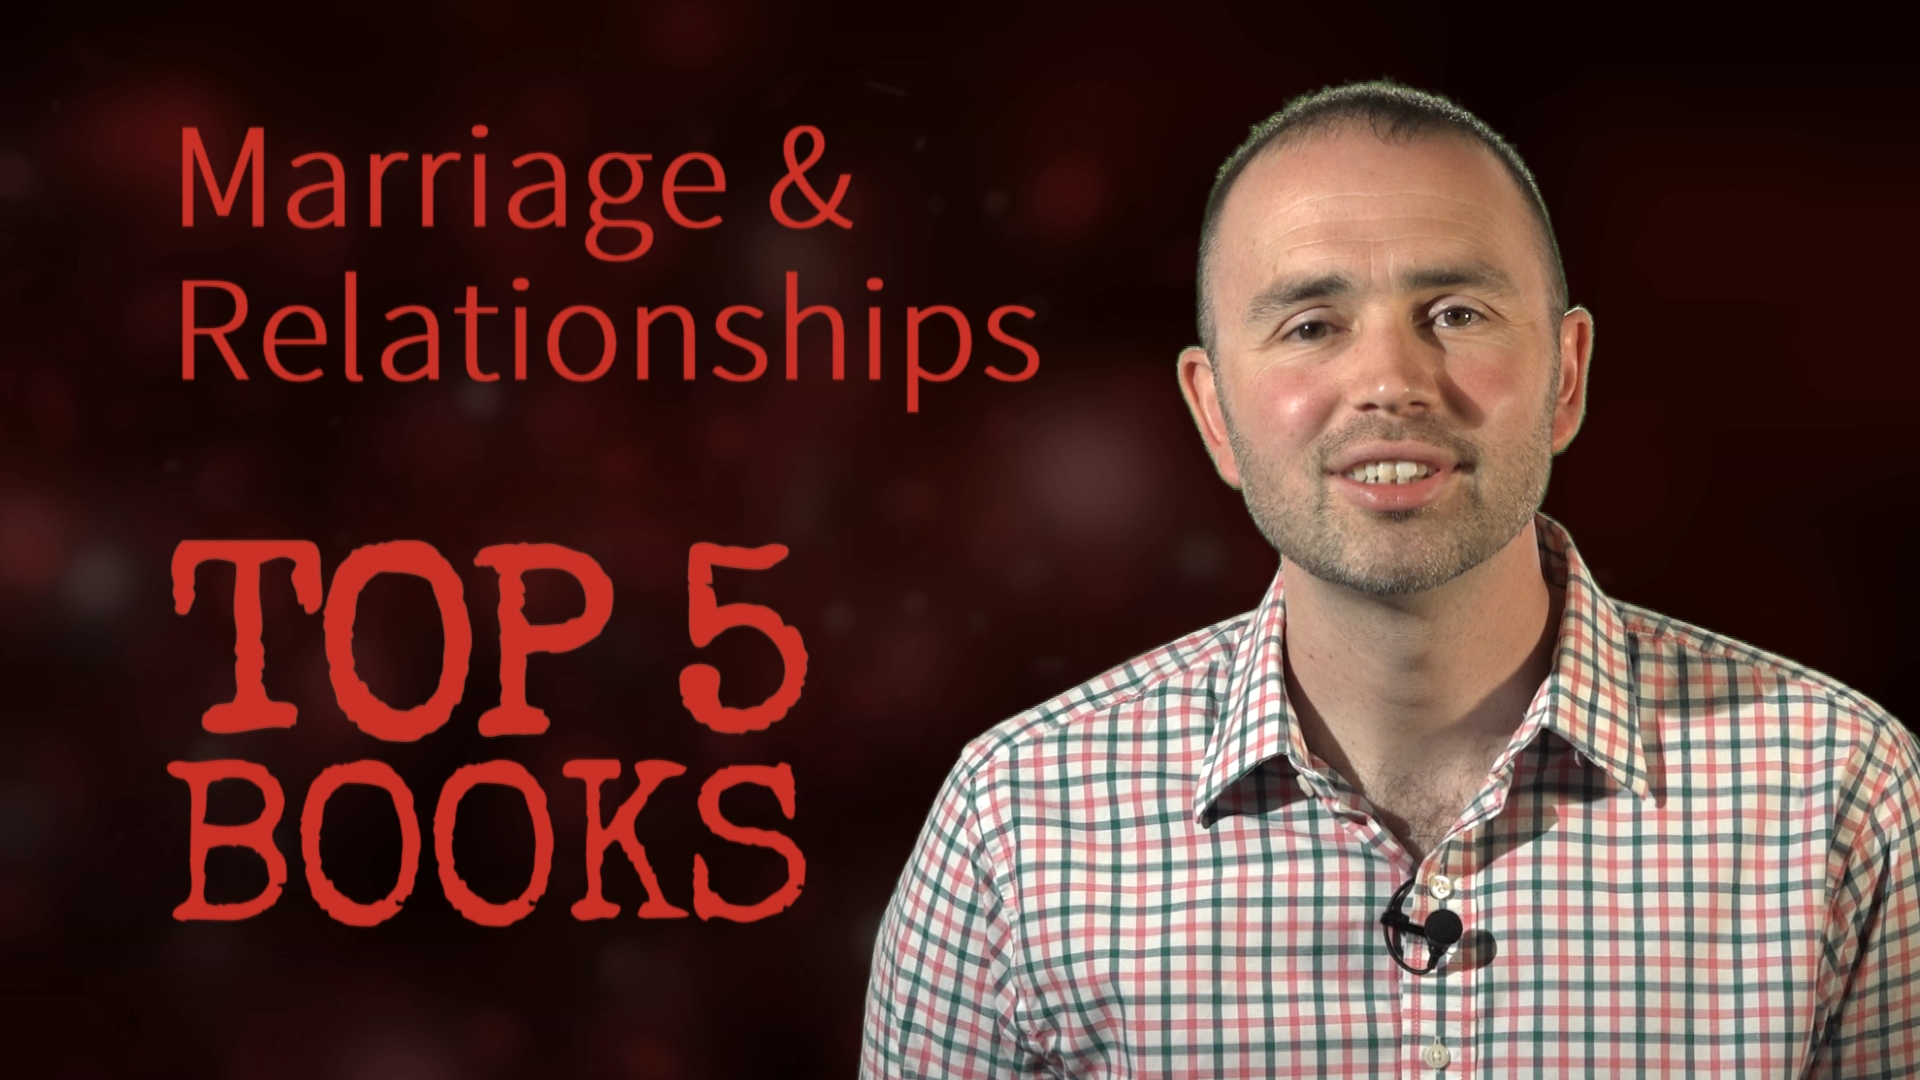 Top 5 Books in 60s... on Marriage and Relationships